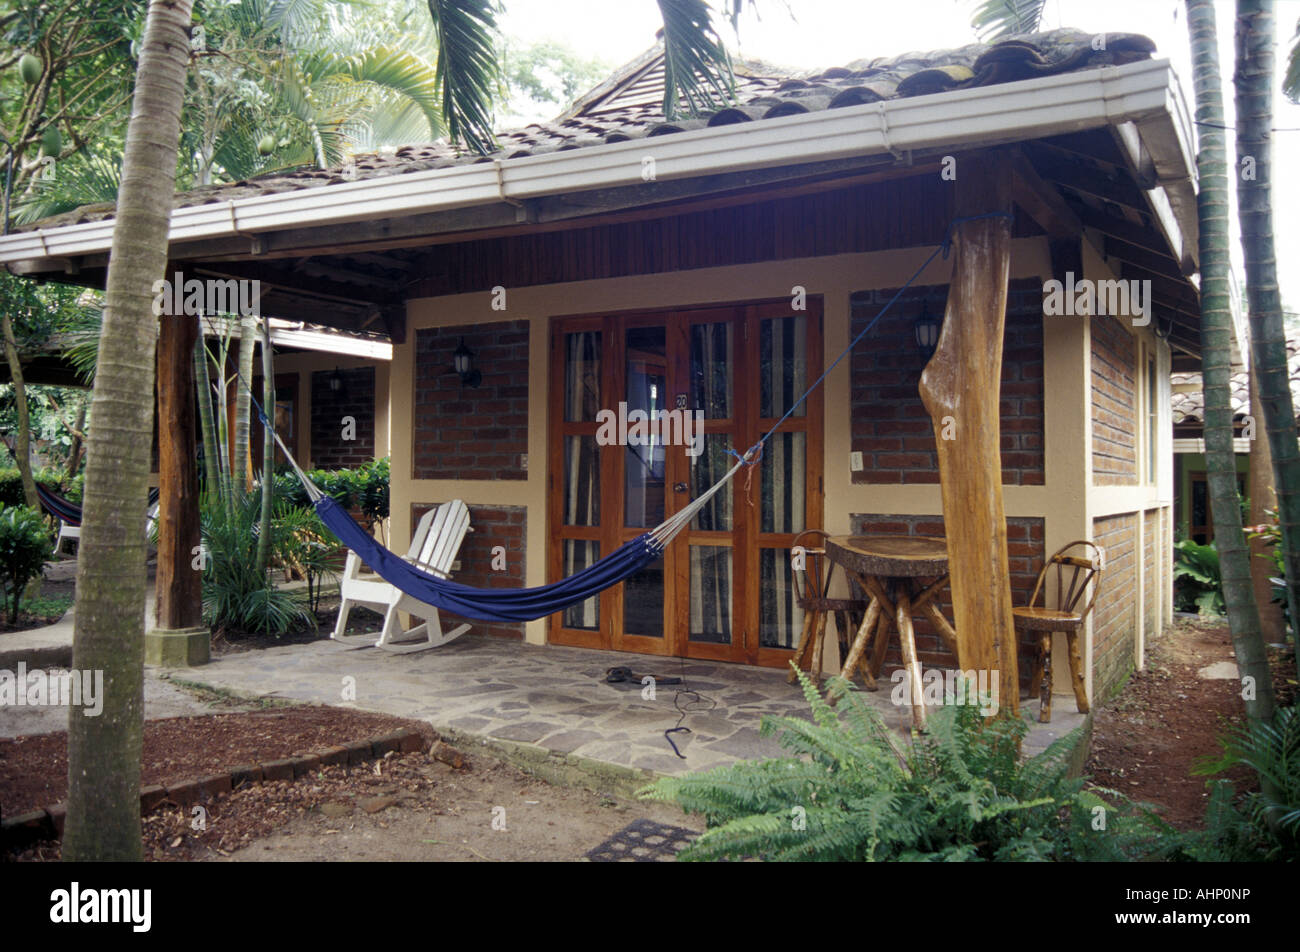 A guest cabin and hammock at the Hotel Villa Paraiso on Isla de Ometepe or Ometepe Island, Nicaragua. - Stock Image